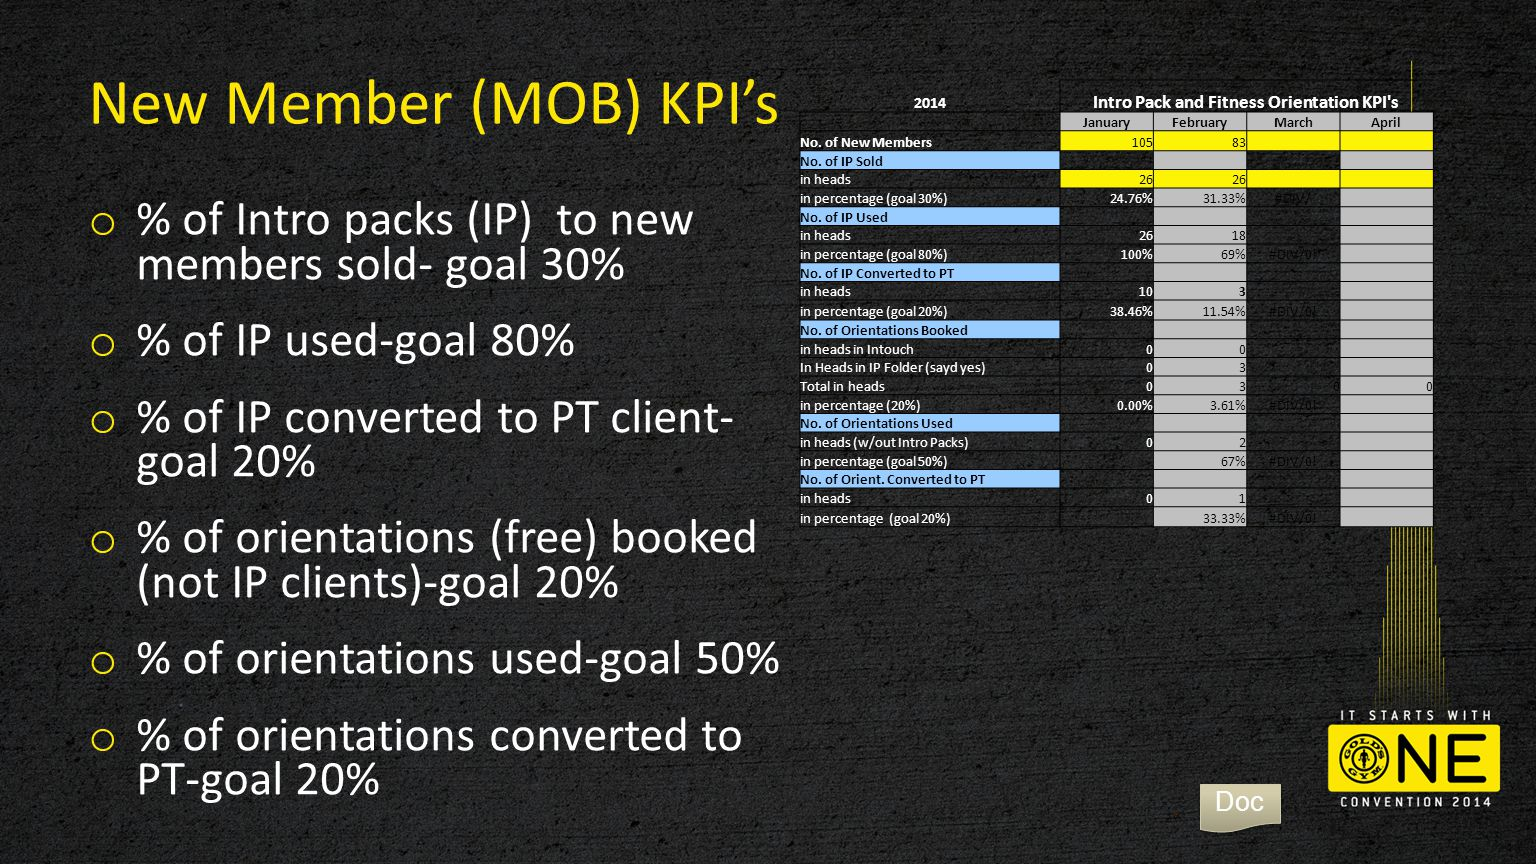 New Member (MOB) KPI's o % of Intro packs (IP) to new members sold- goal 30% o % of IP used-goal 80% o % of IP converted to PT client- goal 20% o % of orientations (free) booked (not IP clients)-goal 20% o % of orientations used-goal 50% o % of orientations converted to PT-goal 20% 2014 Intro Pack and Fitness Orientation KPI s JanuaryFebruaryMarchApril No.